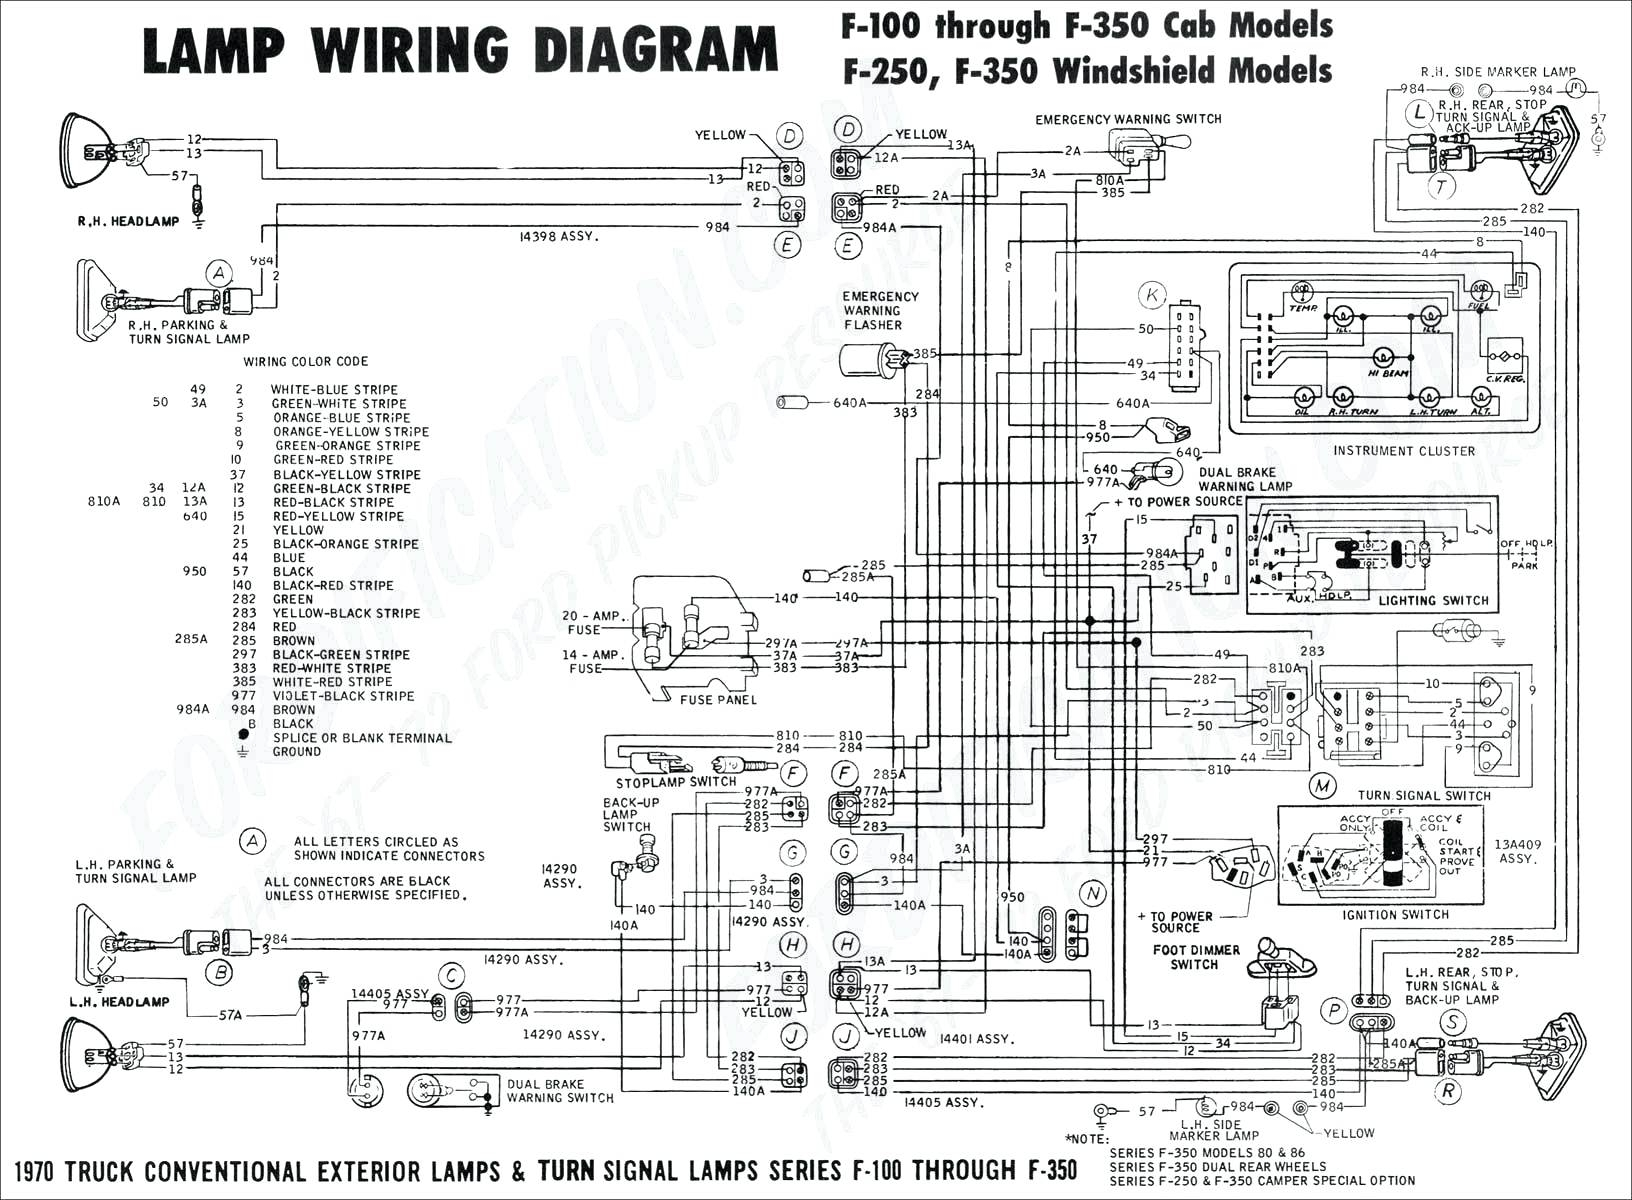 starter solenoid wiring diagram with attached solenoid 1994 f150 starter solenoid wiring diagram ford f250 starter solenoid wiring diagram | free wiring ... #11